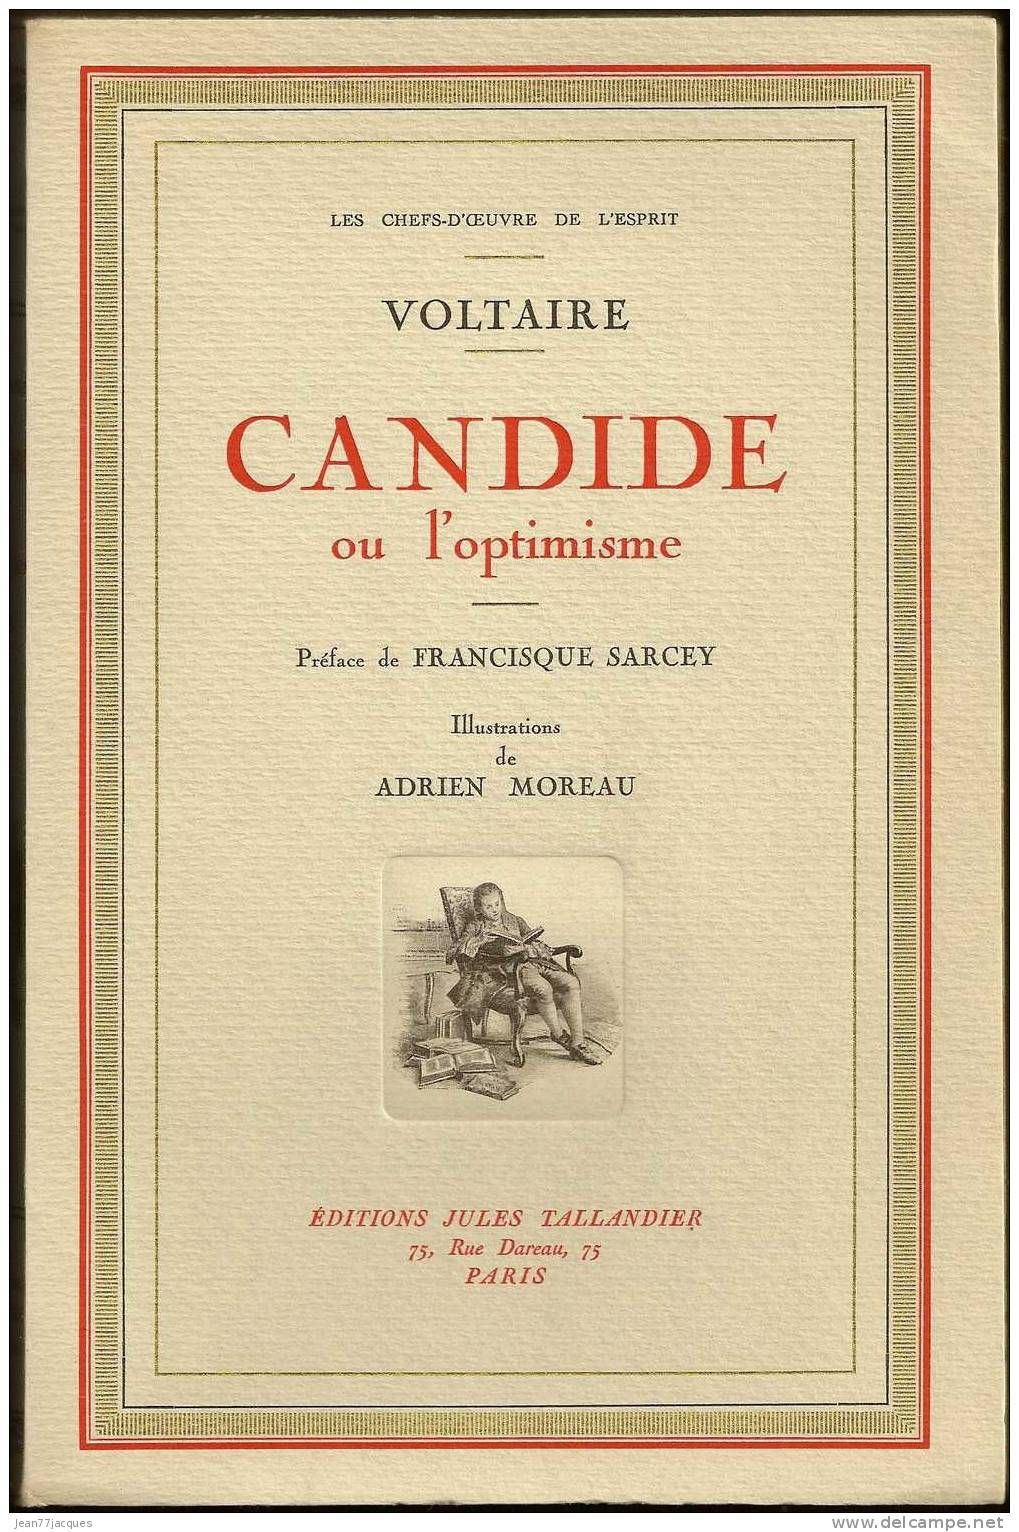 an analysis of candide a novel by voltaire Candide voltaire: voltaire's candide: complete text of the novel by voltaire part one: chapters 1 - 5 part two: chapters 6 - 10 part three: chapters 11 - 15.